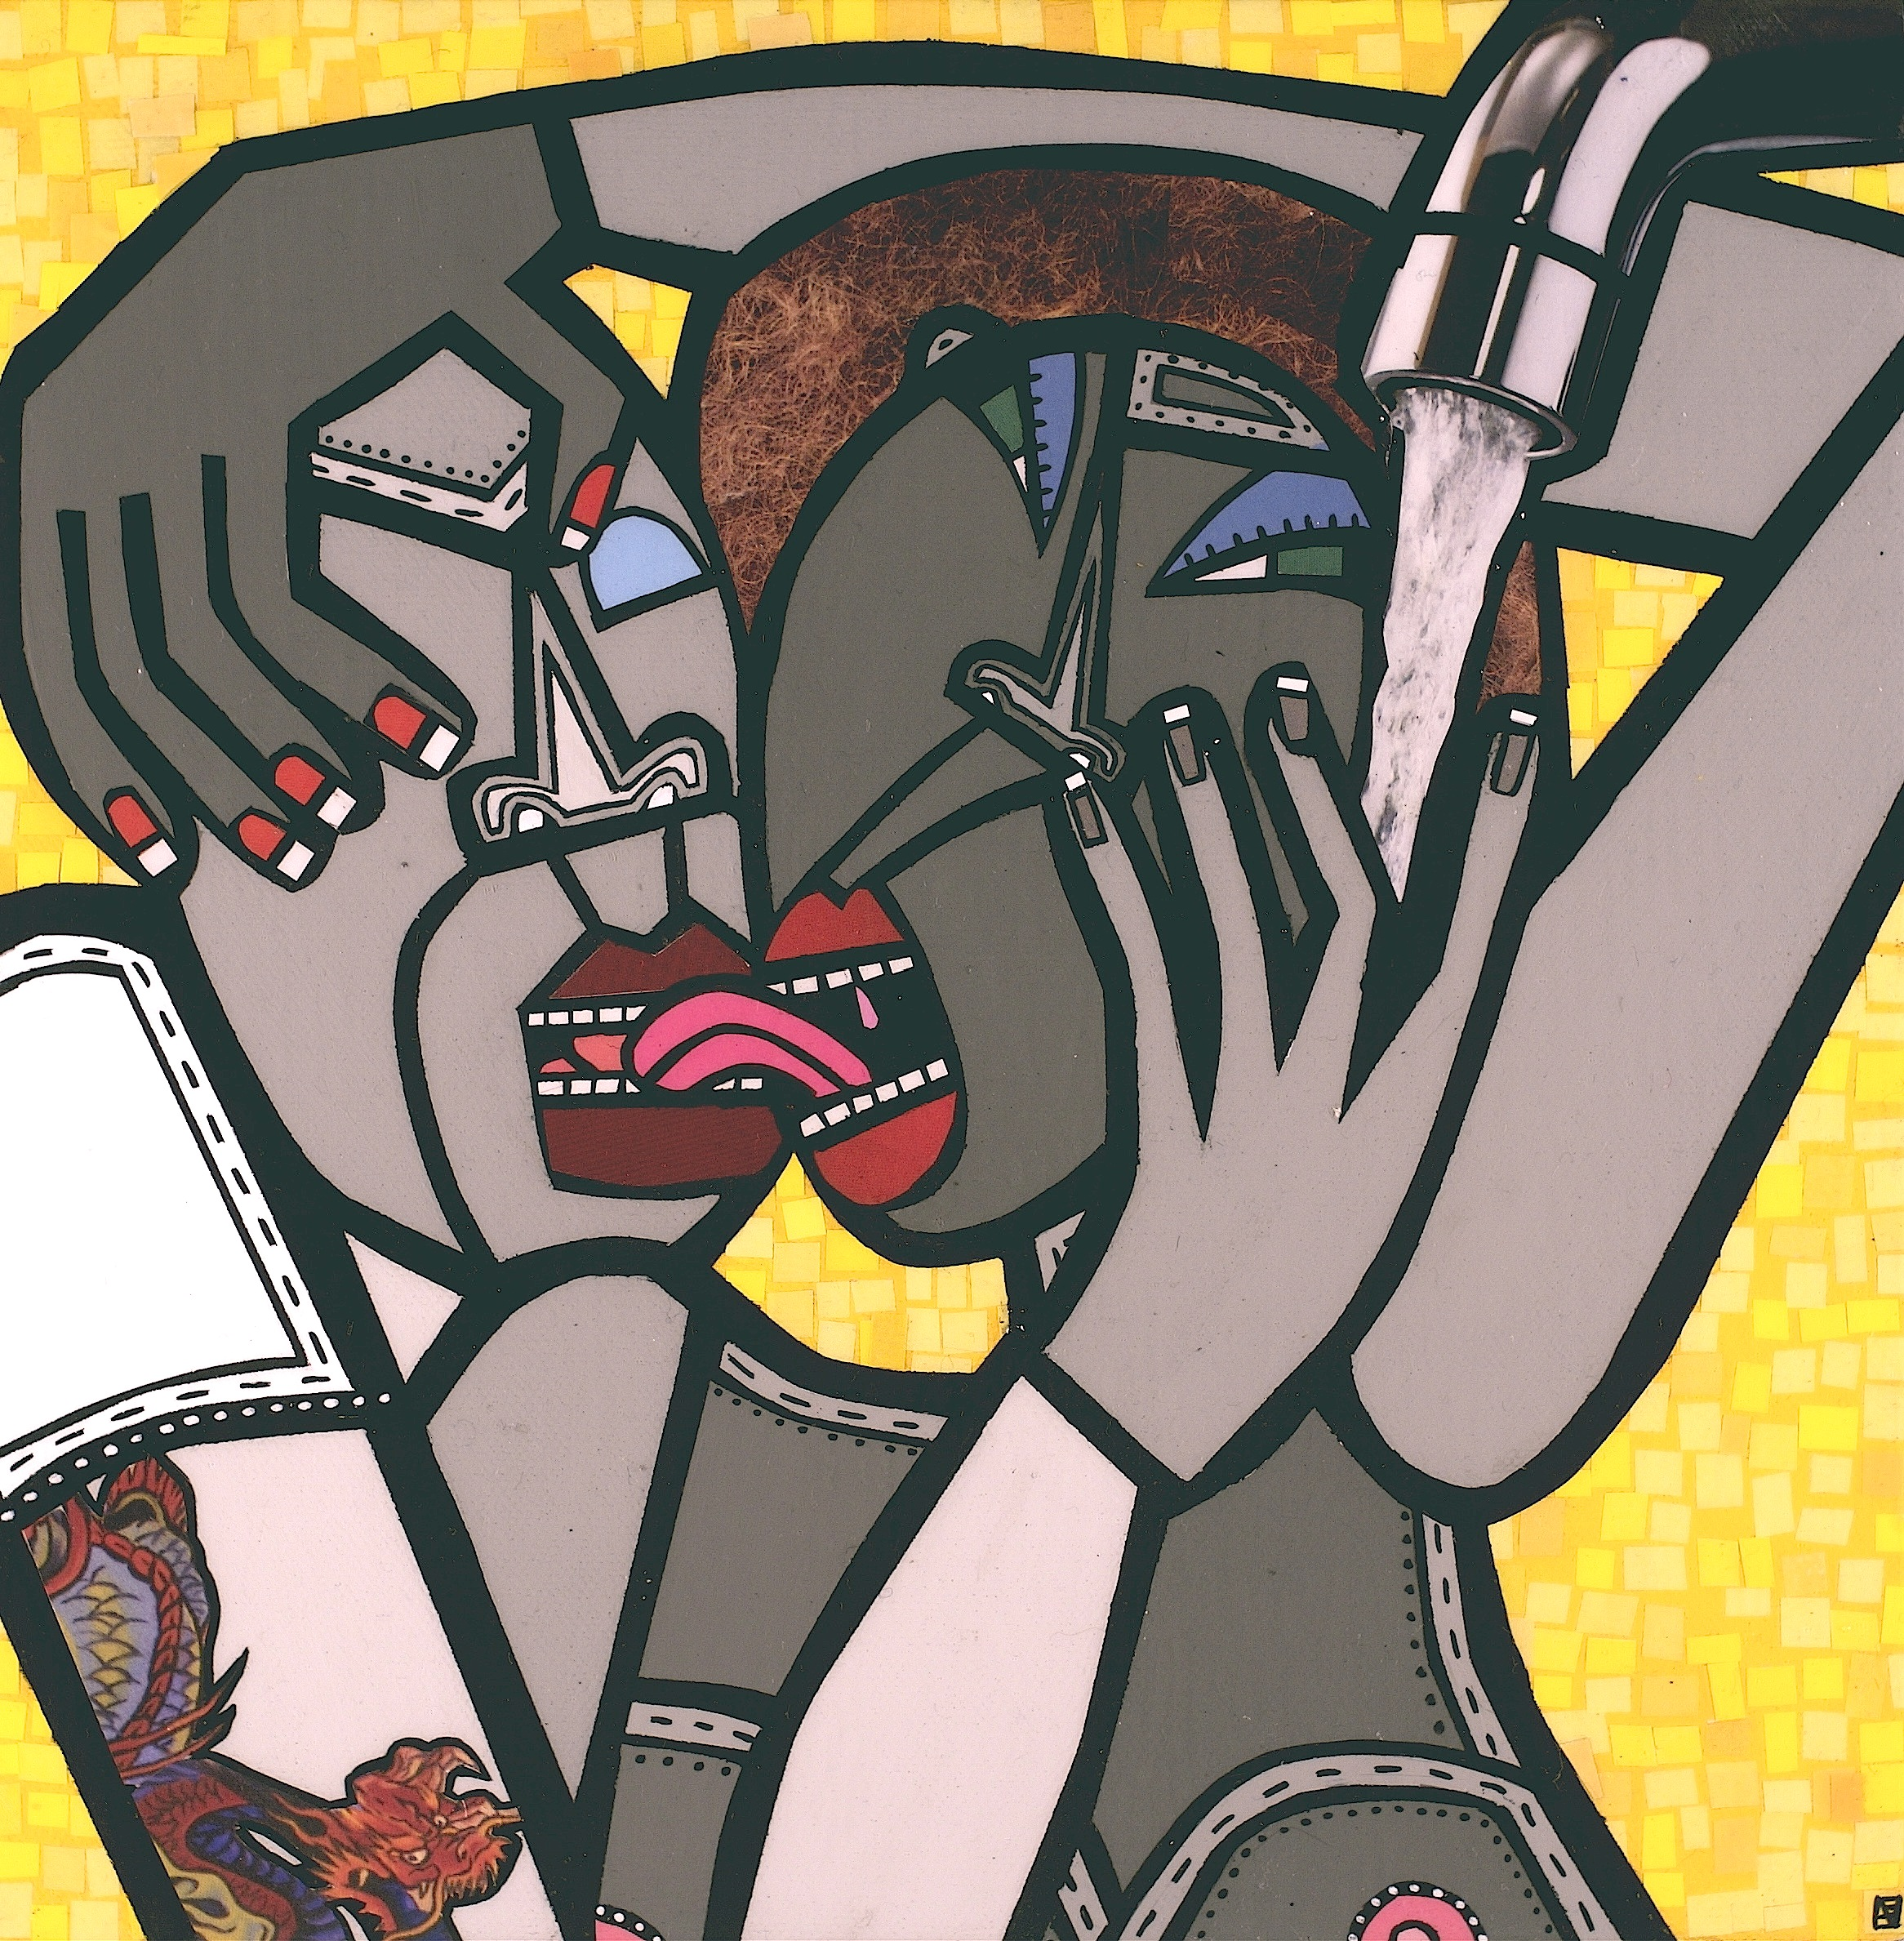 Untitled, acrylic and paper collage on canvas, 2009, private collection